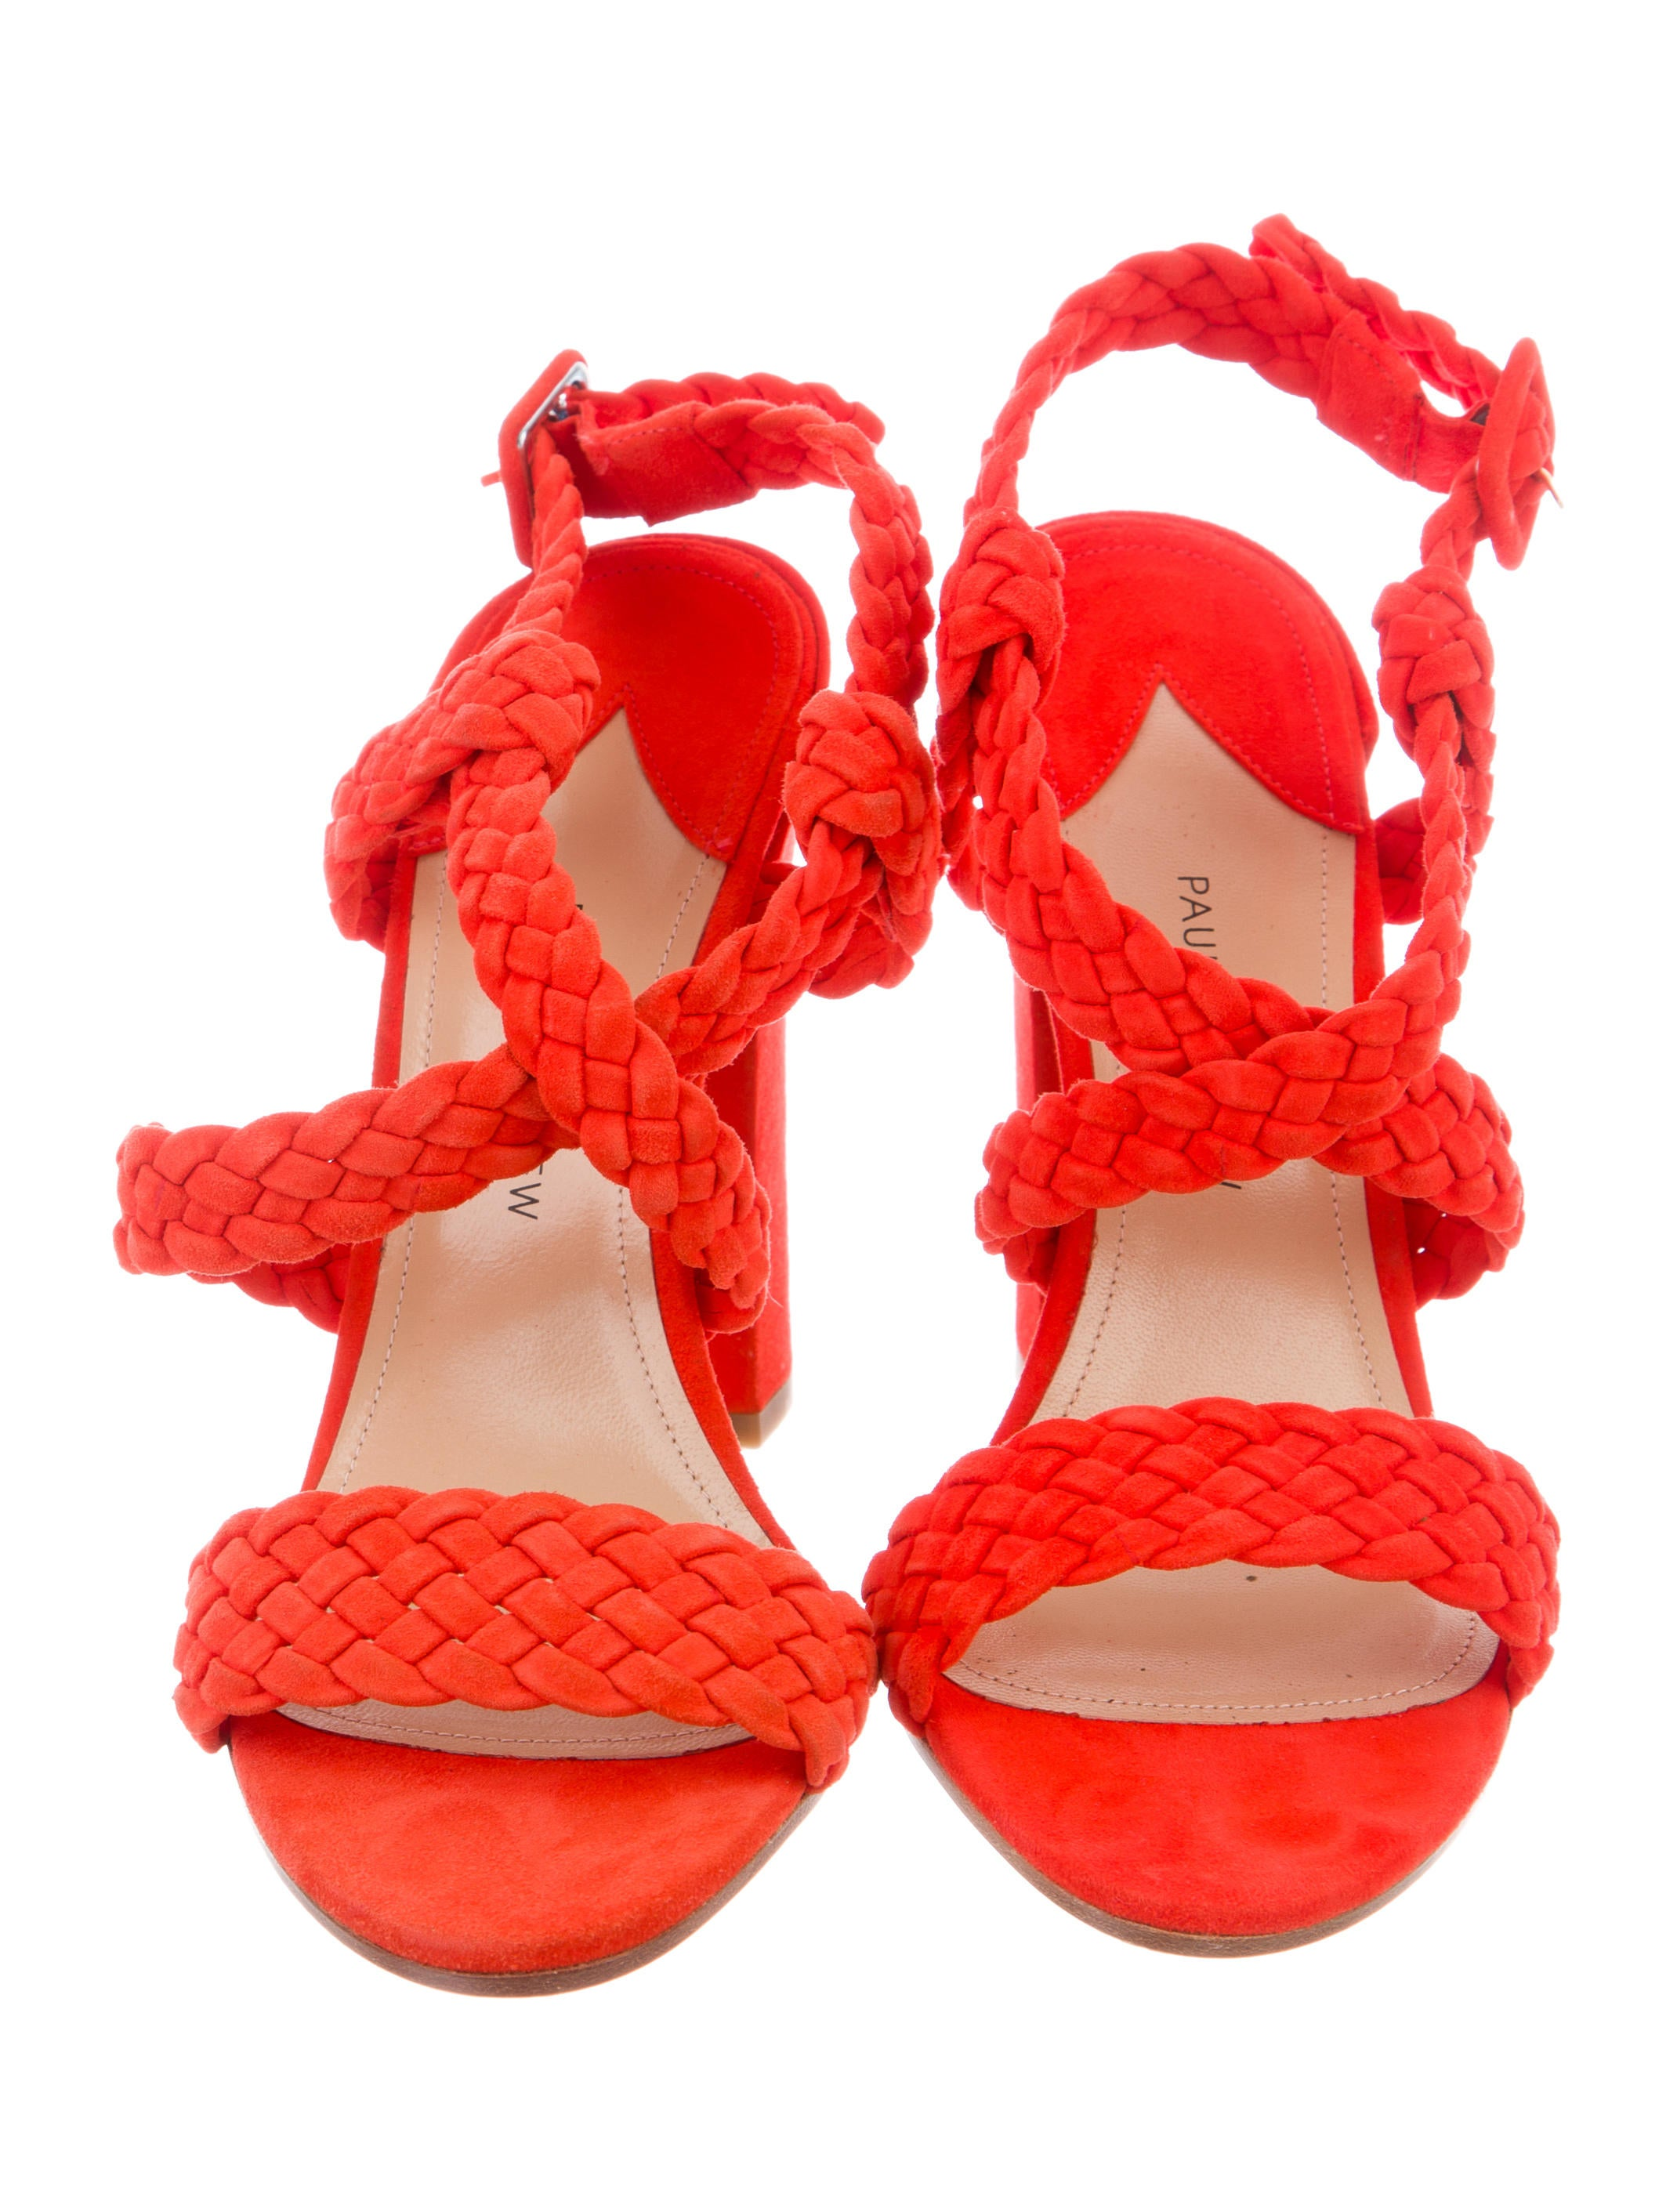 outlet cheap Paul Andrew Elisabet Braided Sandals w/ Tags get to buy sale online outlet 2014 new low cost cheap online cGWEKaxA